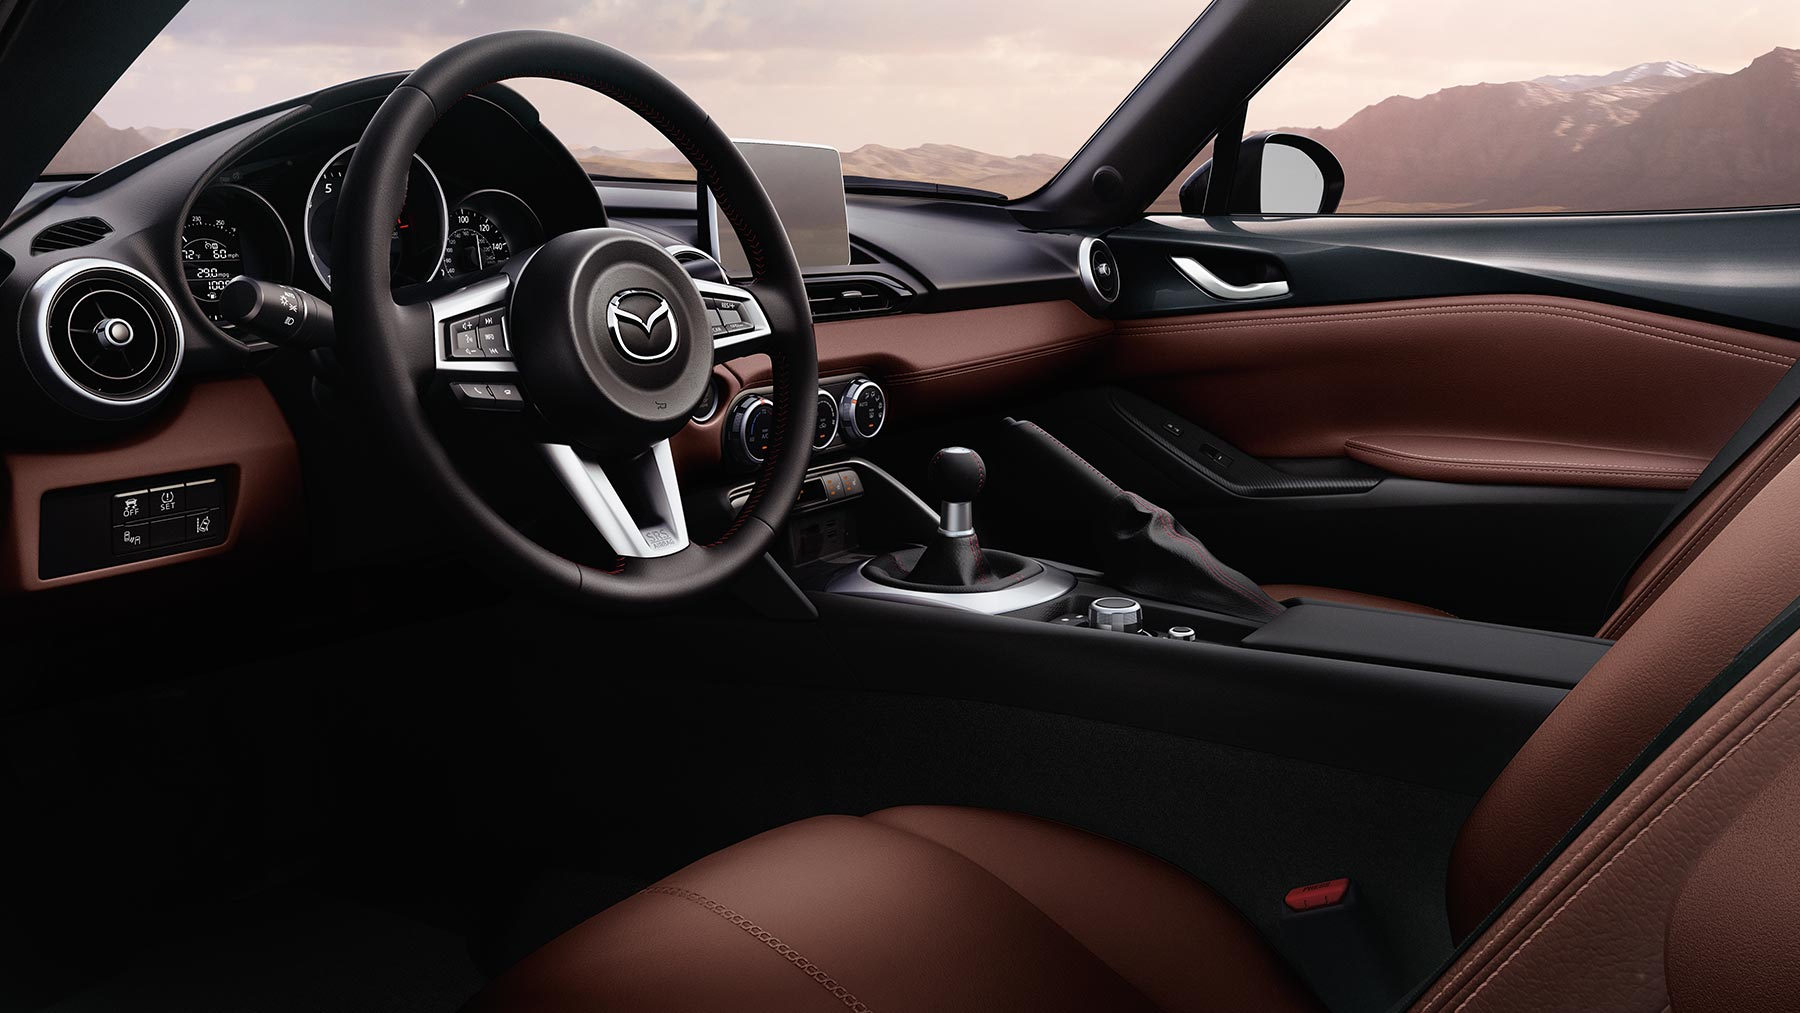 2017 Mazda MX-5 Miata Side Interior